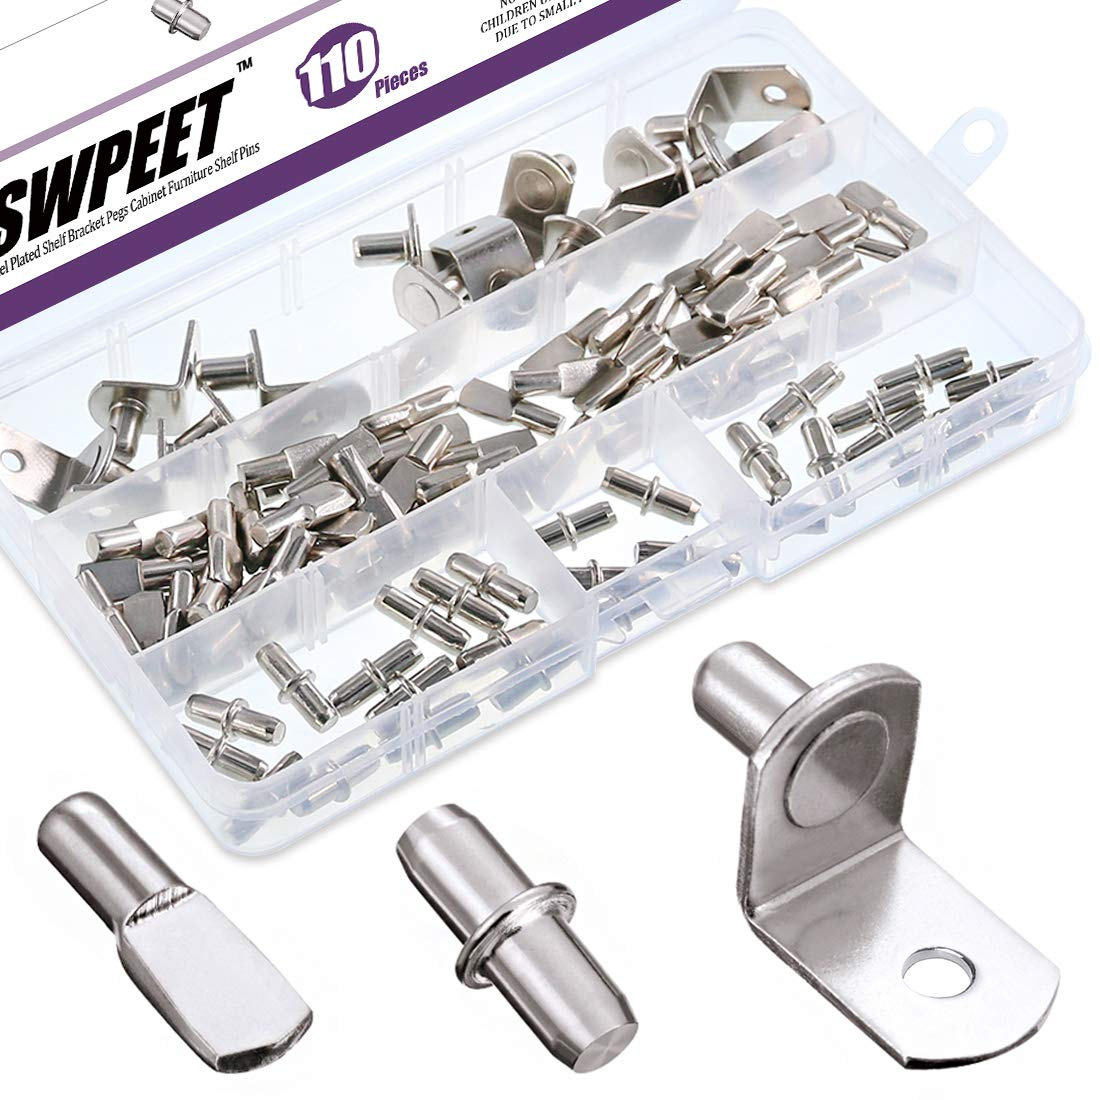 Swpeet 110Pcs 3 Styles Shelf Pins Kit, Top Quality Nickel Plated Shelf Bracket Pegs Cabinet Furniture Shelf Pins Support for Shelf Holes on Cabinets, Entertainment Centers